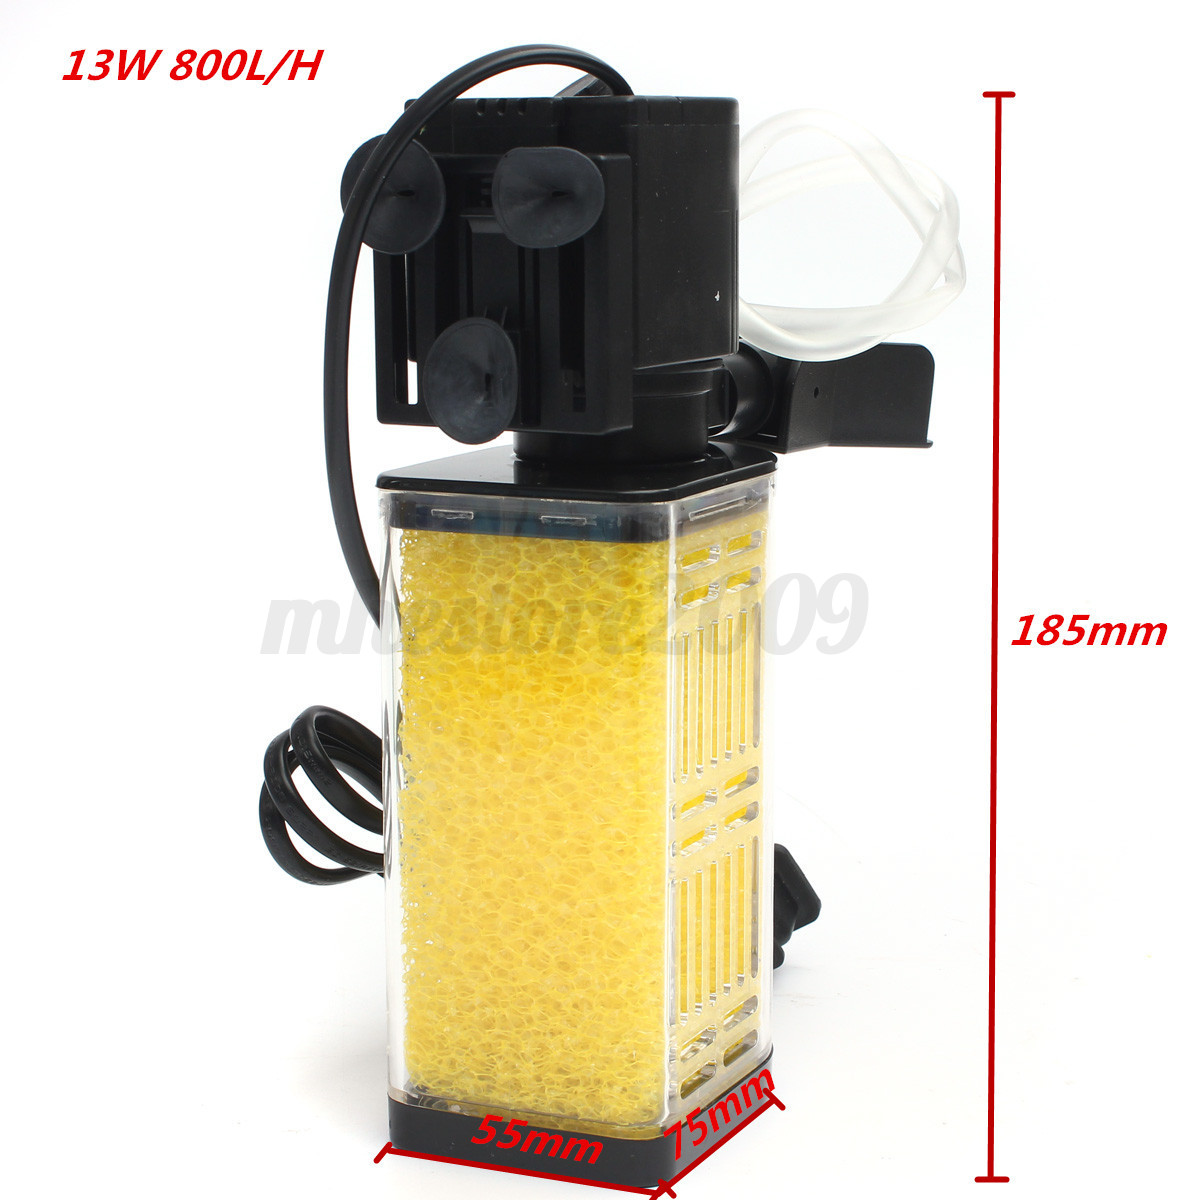 13w 800l h submersible water internal filter pump for for Water filter pump for fish pond